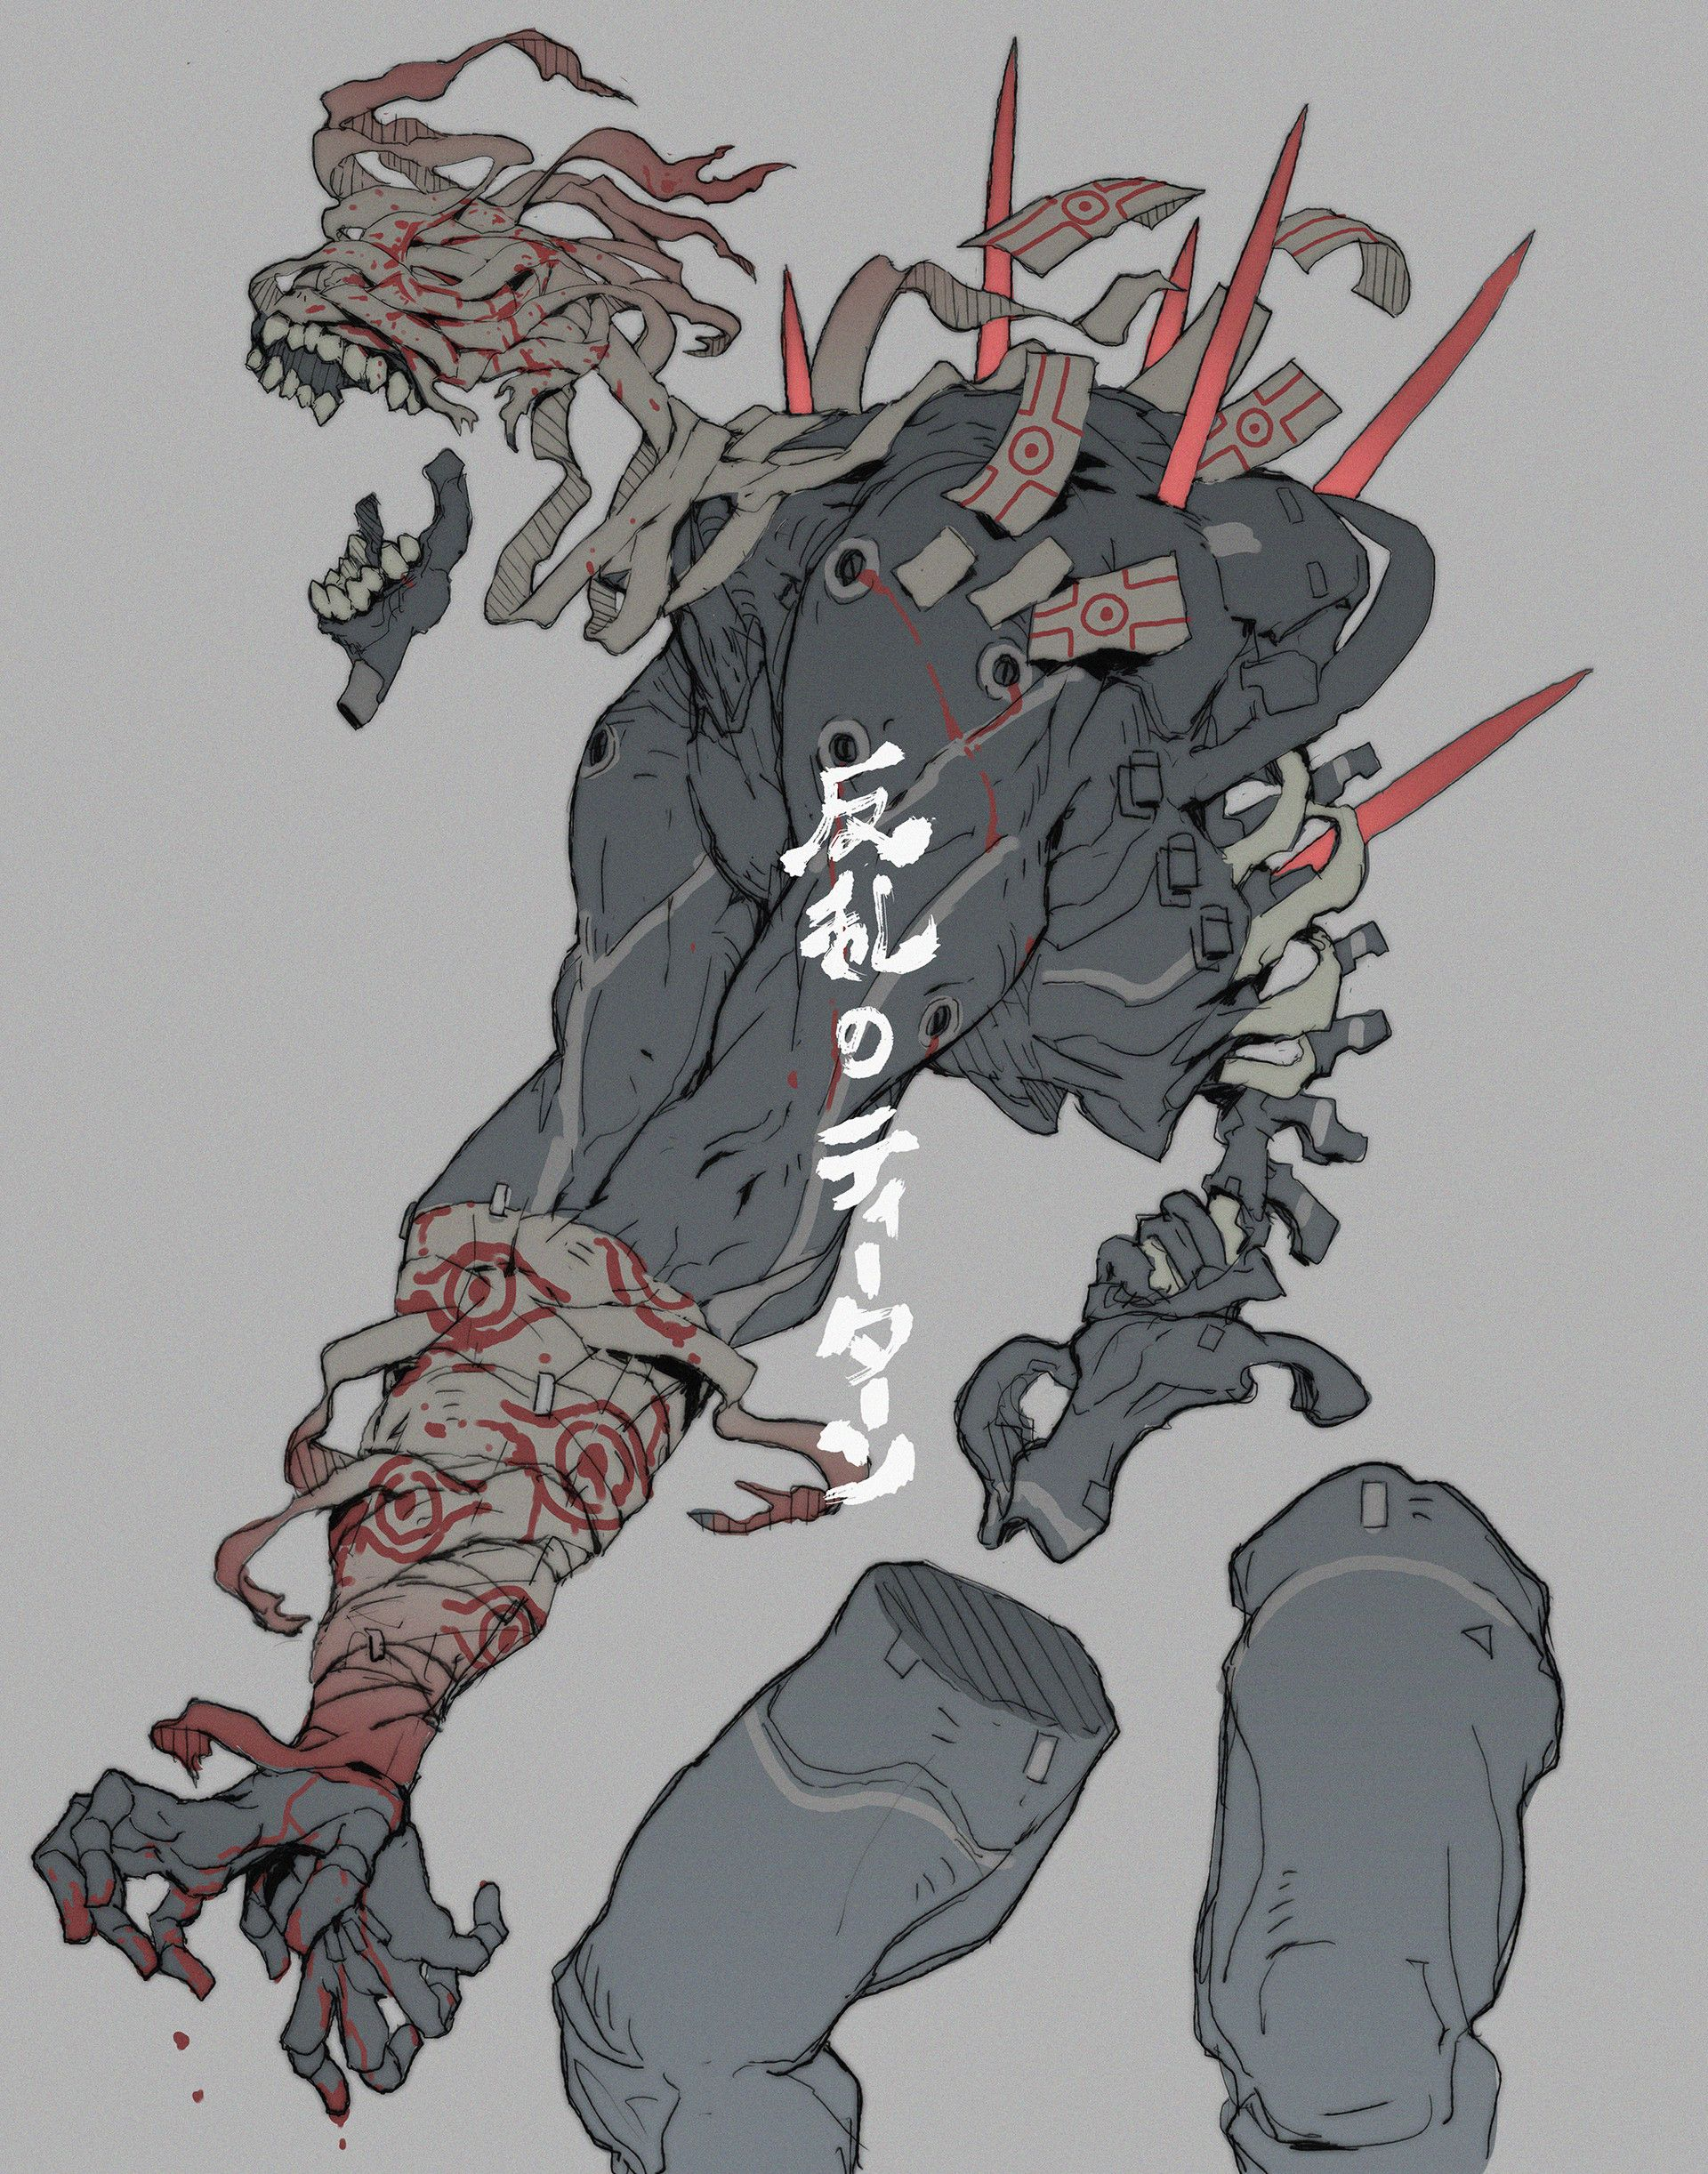 ArtStation - The Titan of rebellion, Ching Yeh | a | Pinterest ...